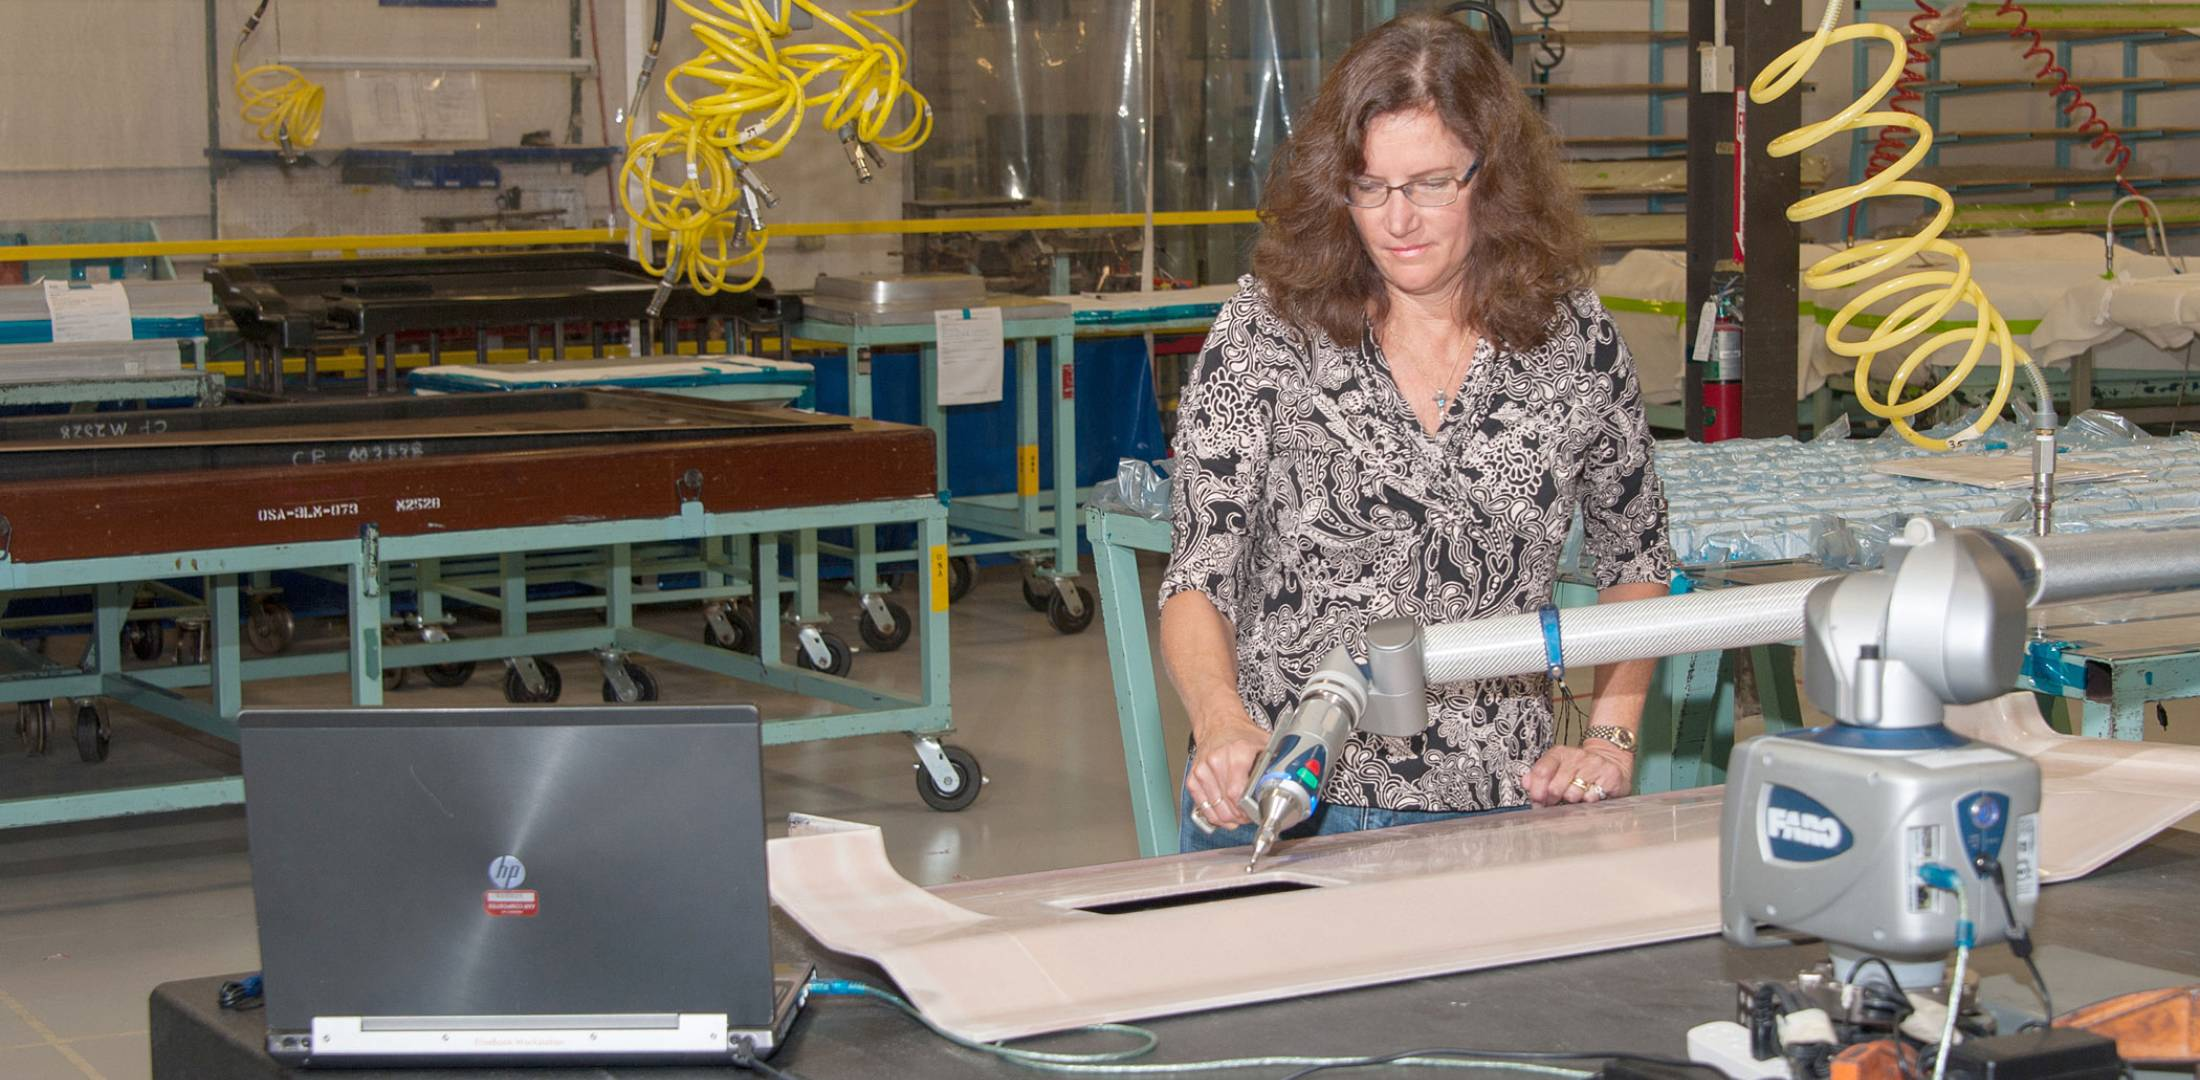 Already well known for composite components, AAR is considering expanding its offerings and expertise in that market.